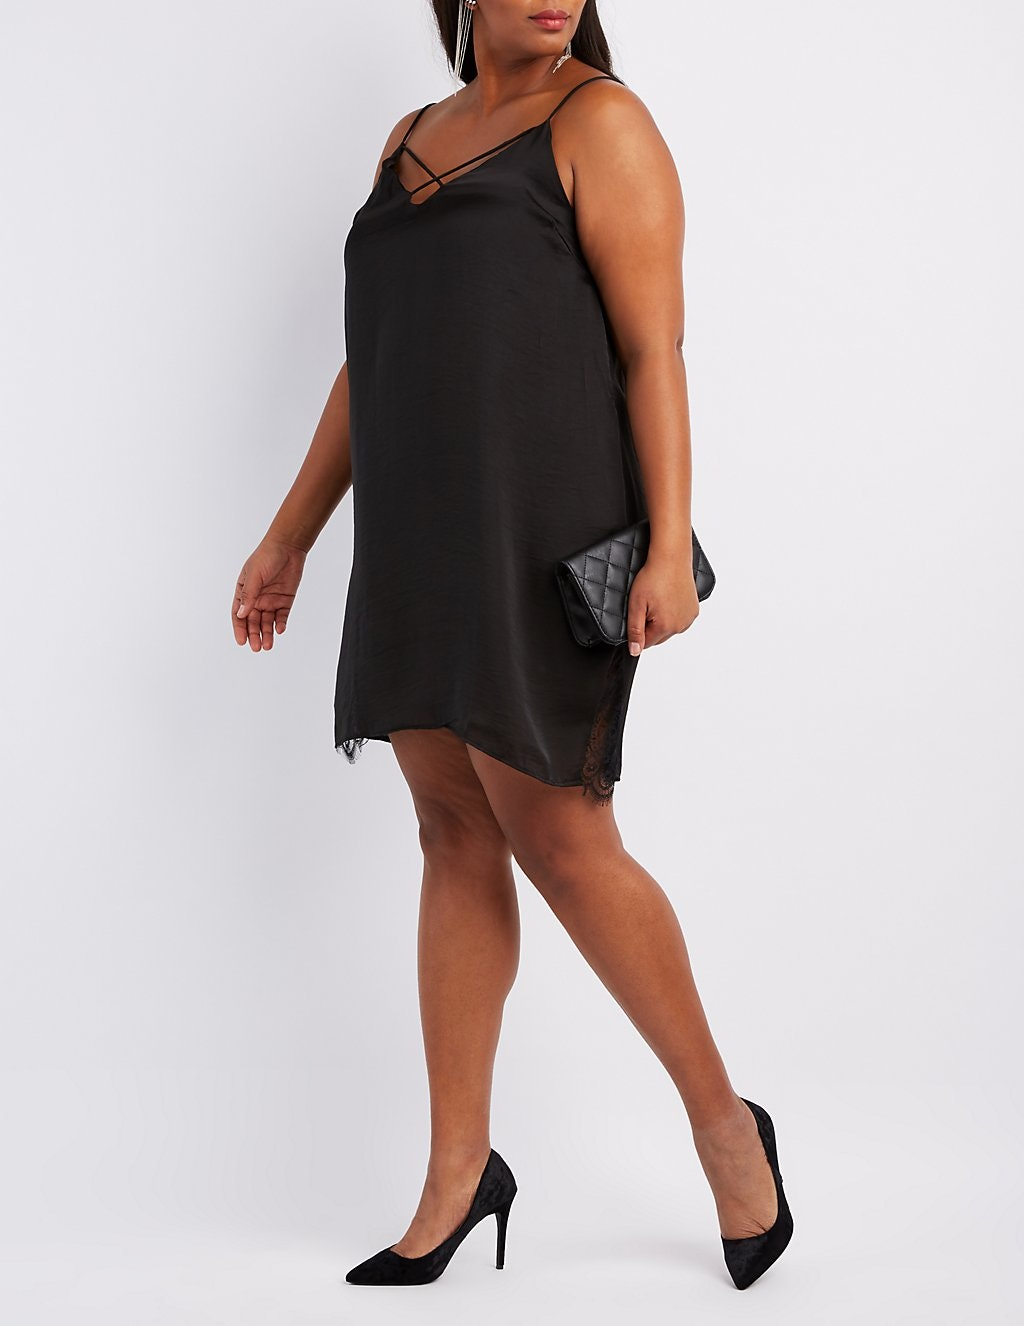 27 Plus Size Dresses For Babes Who Love Satin Silk